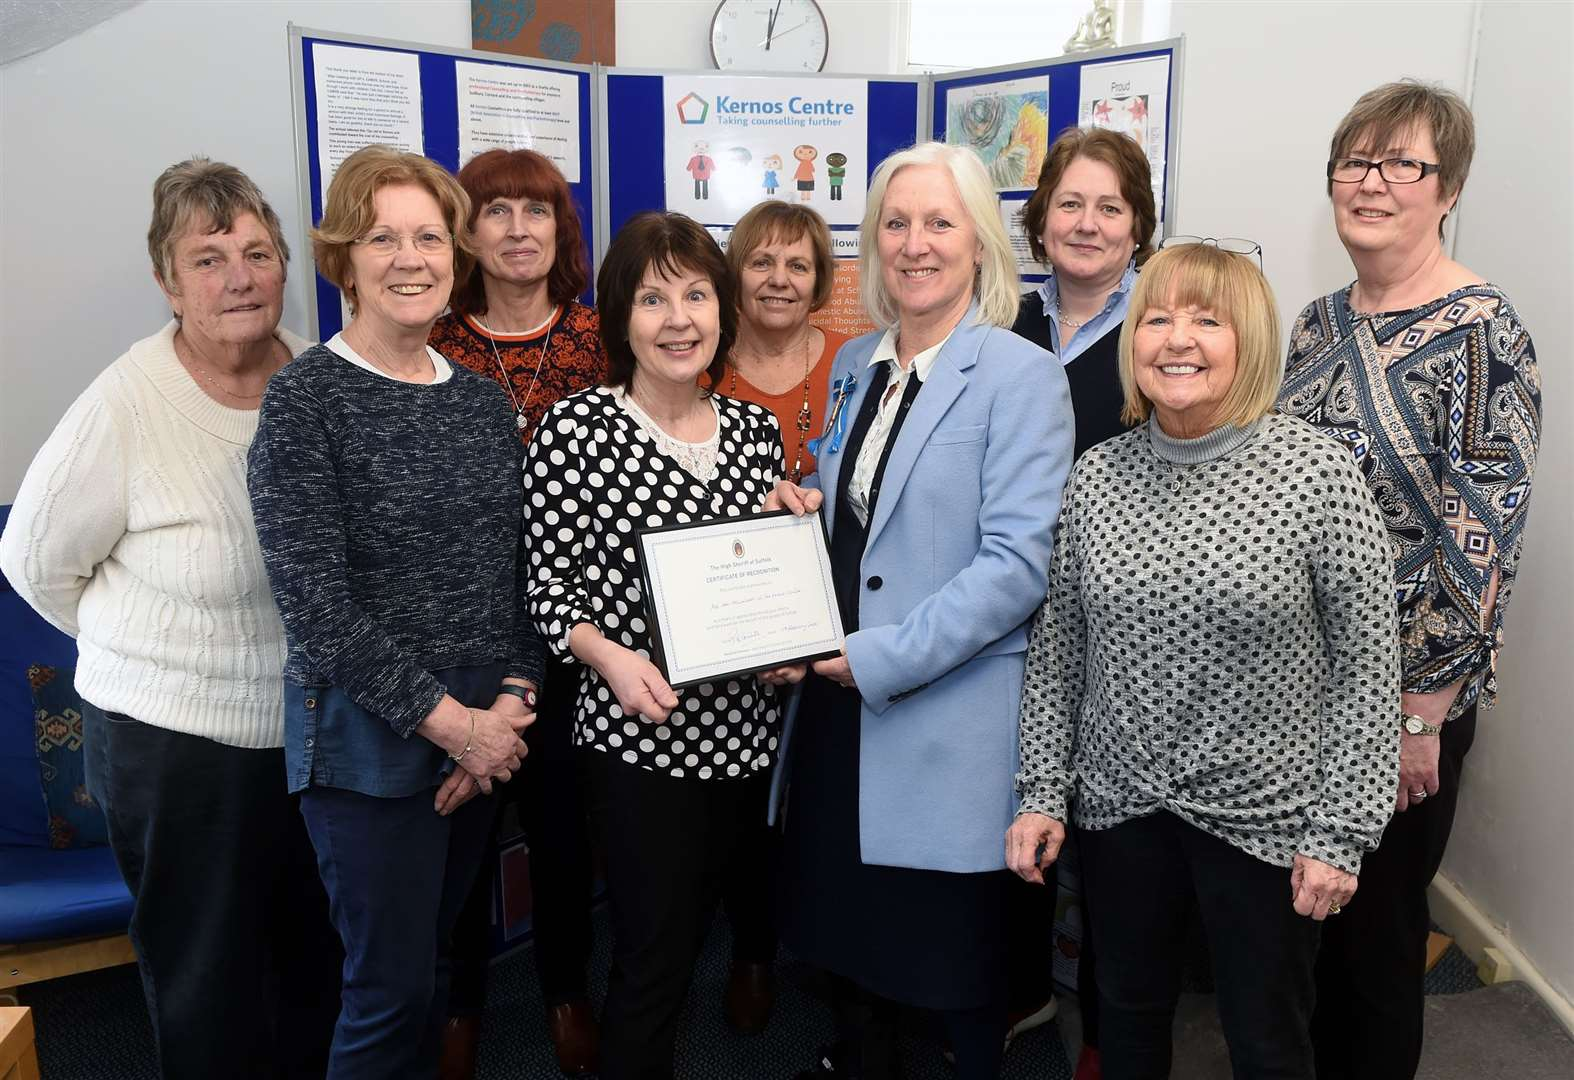 High Sheriff of Suffolk honours Kernos Centre in Sudbury with certificate of recognition